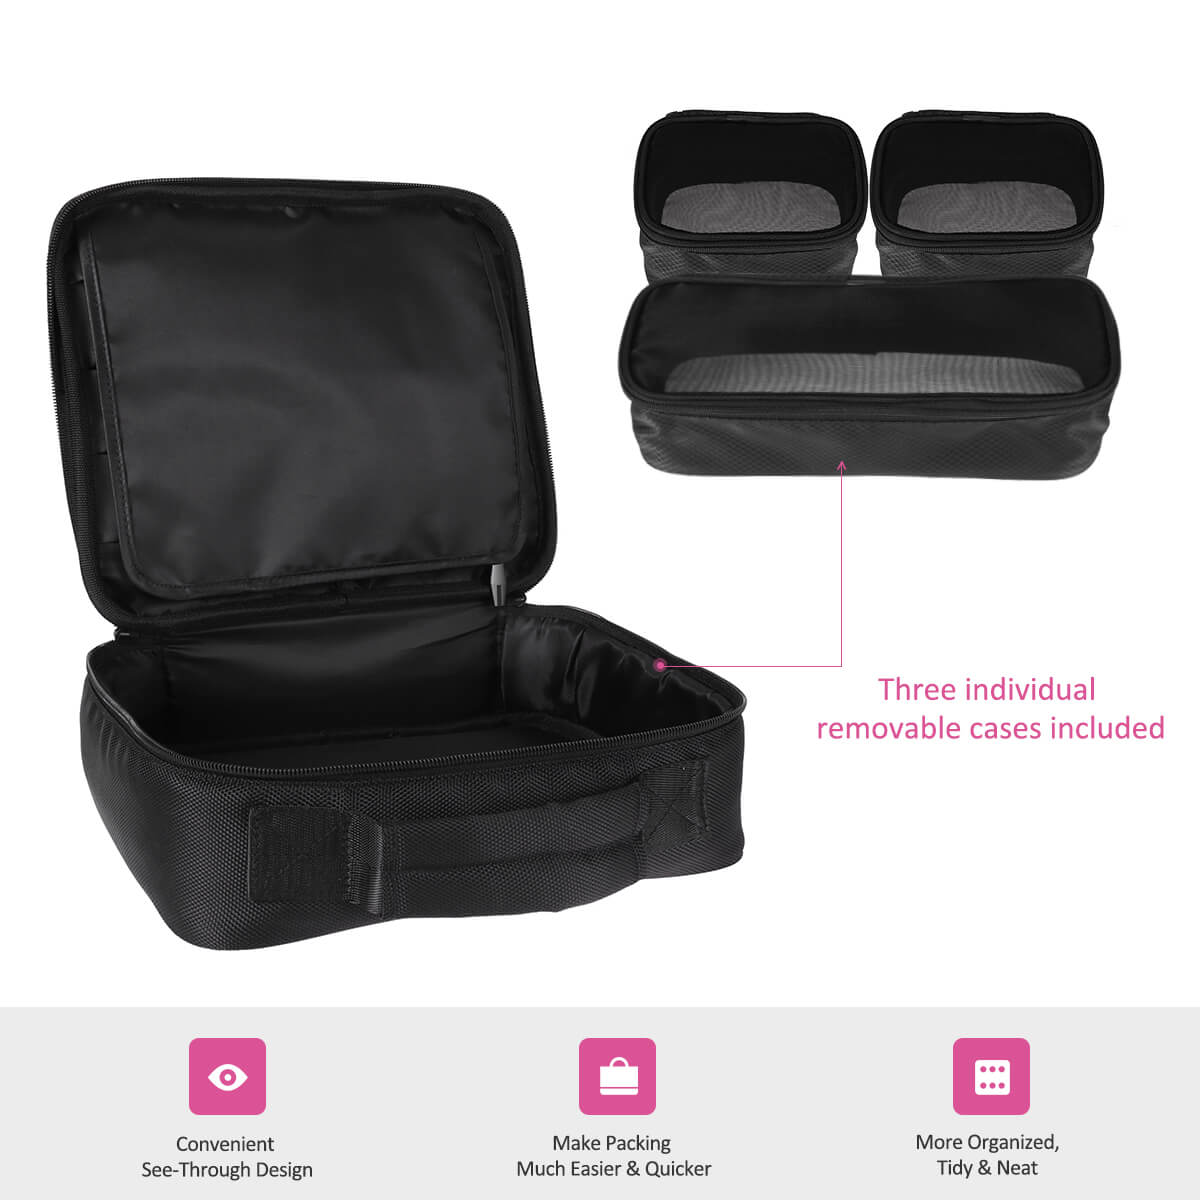 Travel Makeup Bag, Portable Cosmetic Case Train Bag with 3 Individual Cases - Black